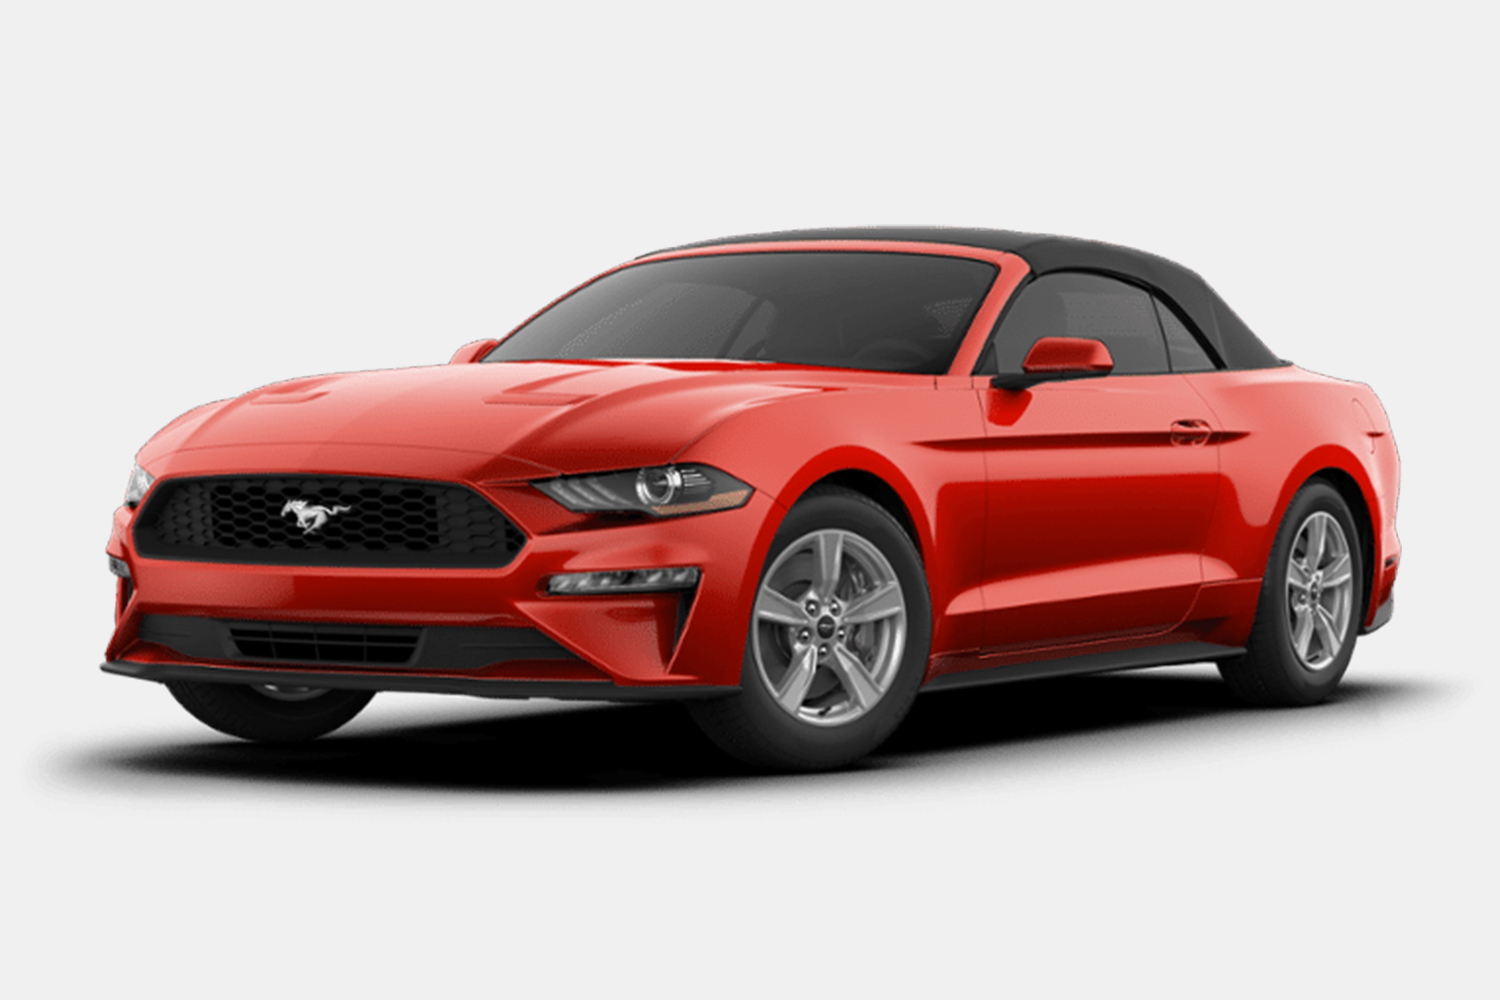 2020 Ford Mustang EcoBoost Convertible in red